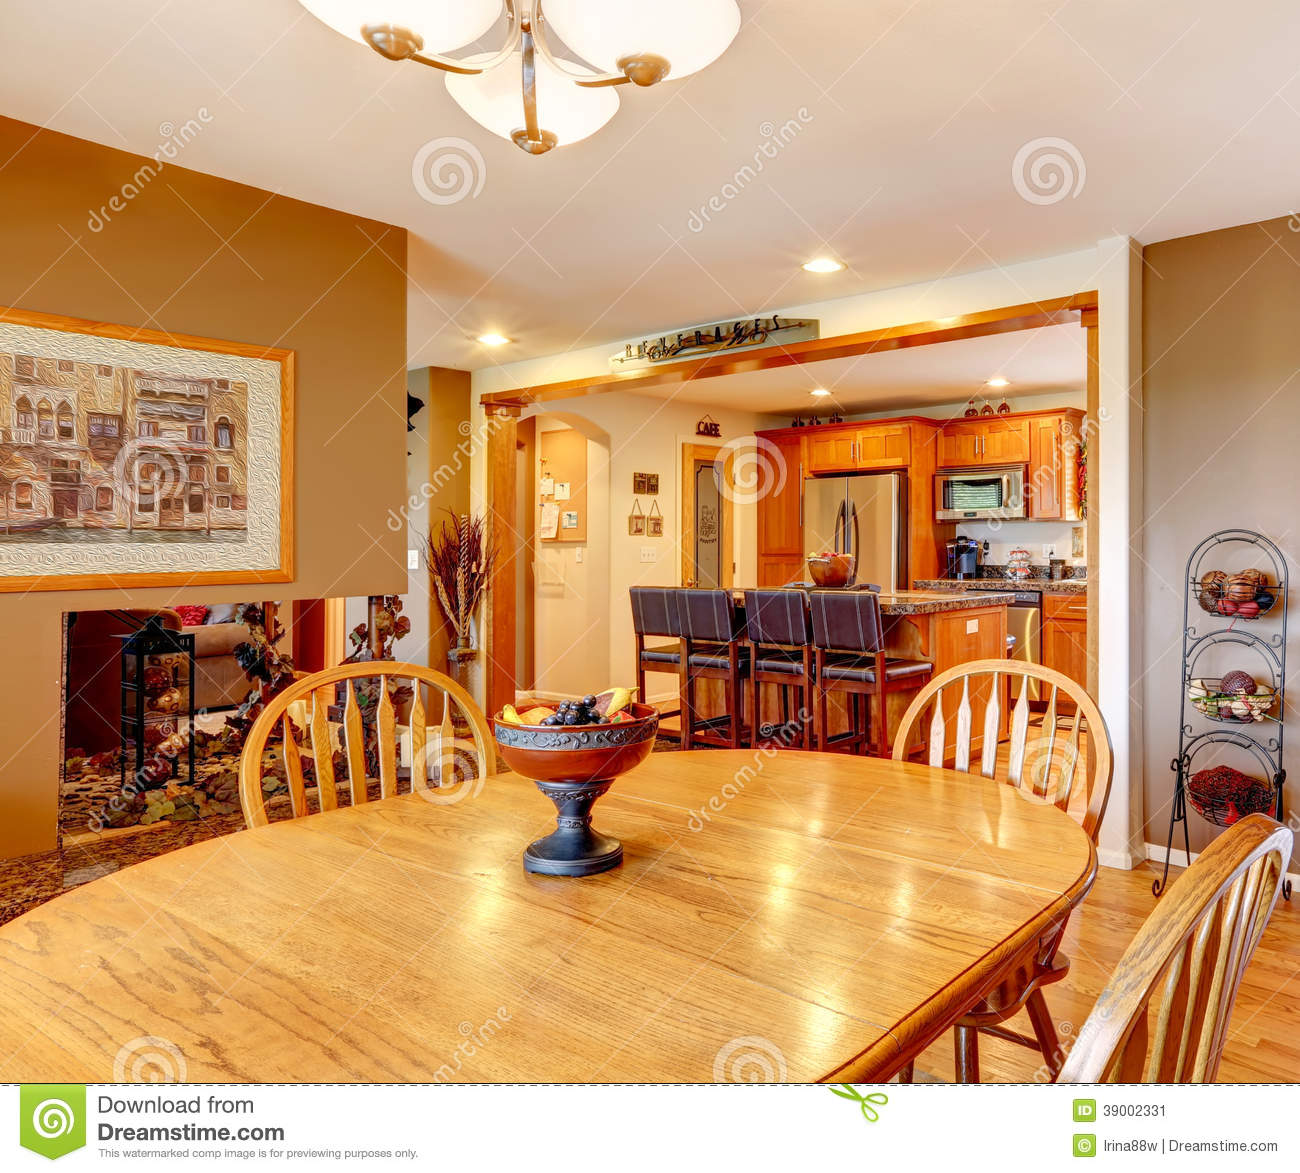 Dining area with wooden table set stock photo image for Dining area interior